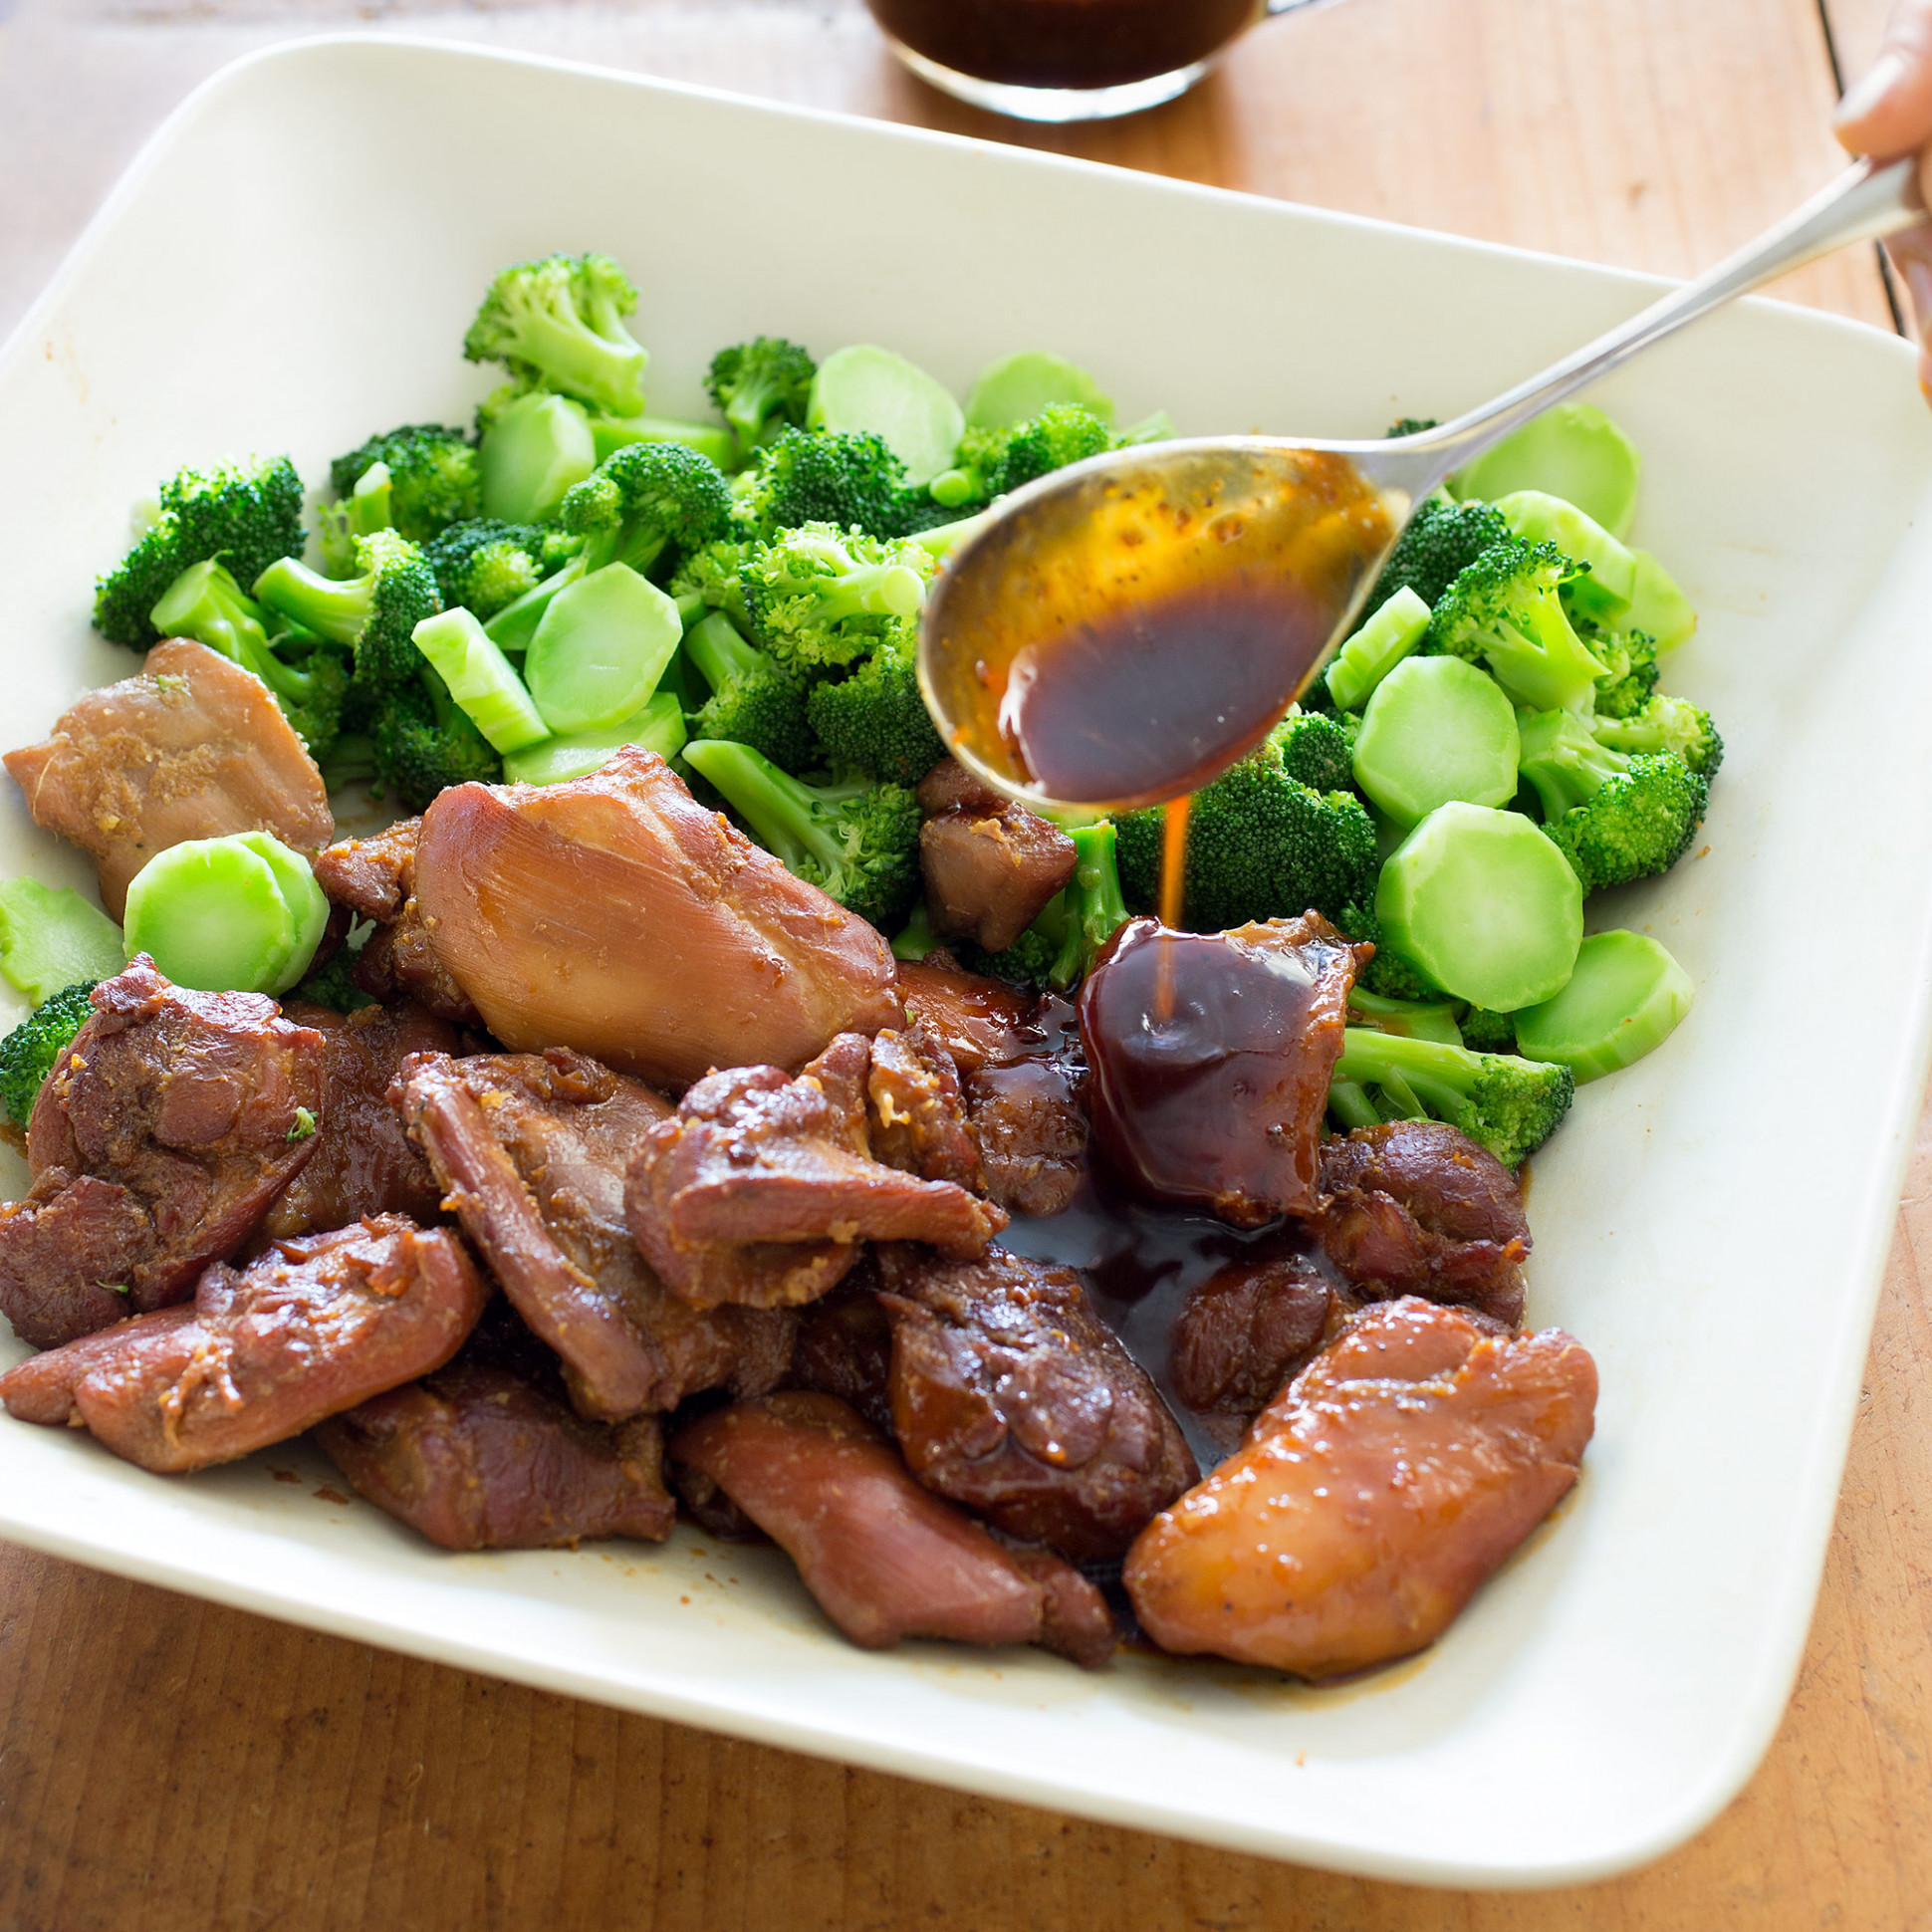 Vietnamese-Style Caramel Chicken with Broccoli | Cook's ...